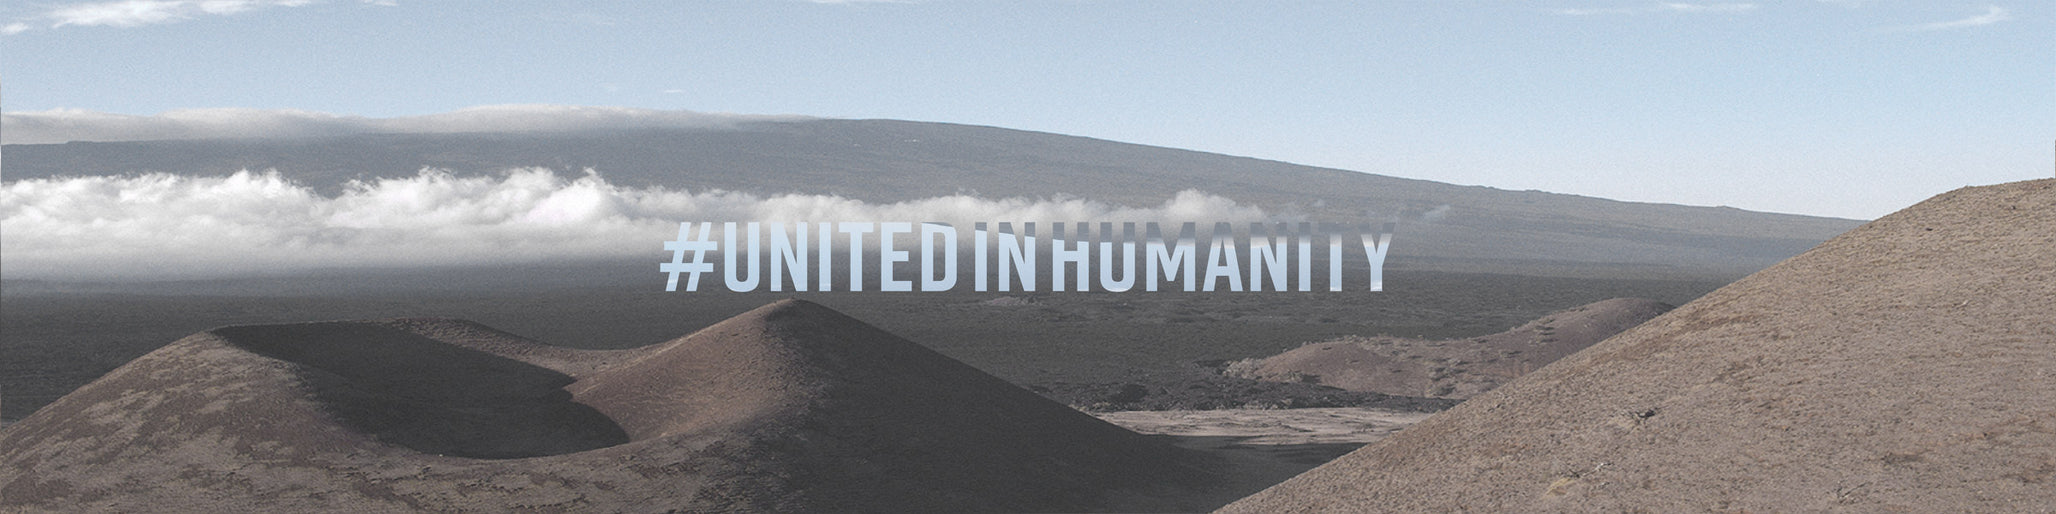 Ryzon United In Humanity Project Header Image